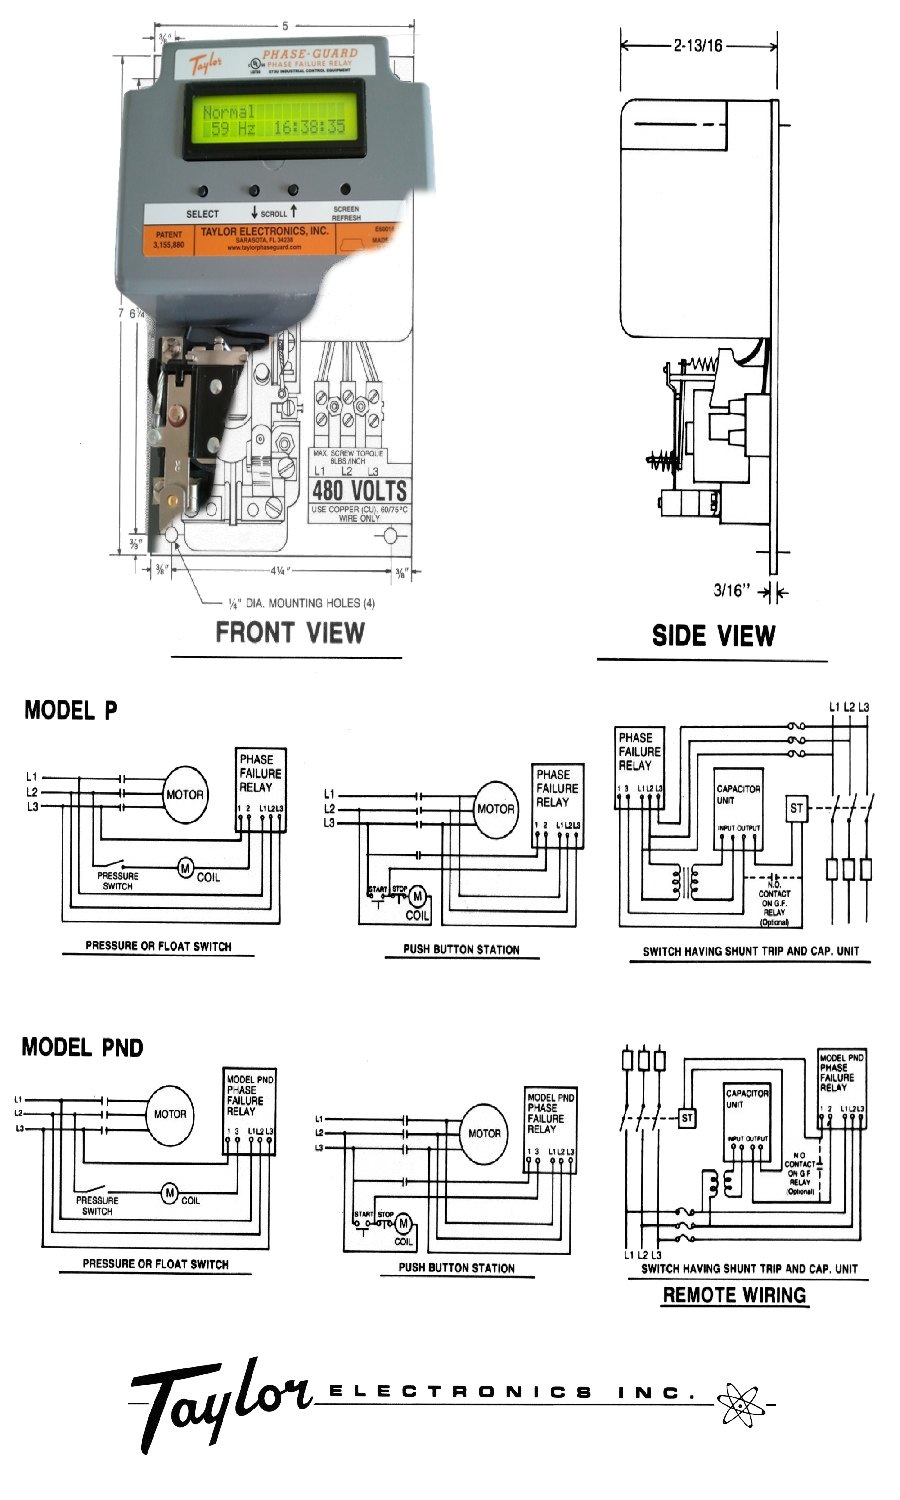 hight resolution of taylor forklift wiring diagrams auto electrical wiring diagram tomberlin emerge wiring diagram taylor forklift wiring